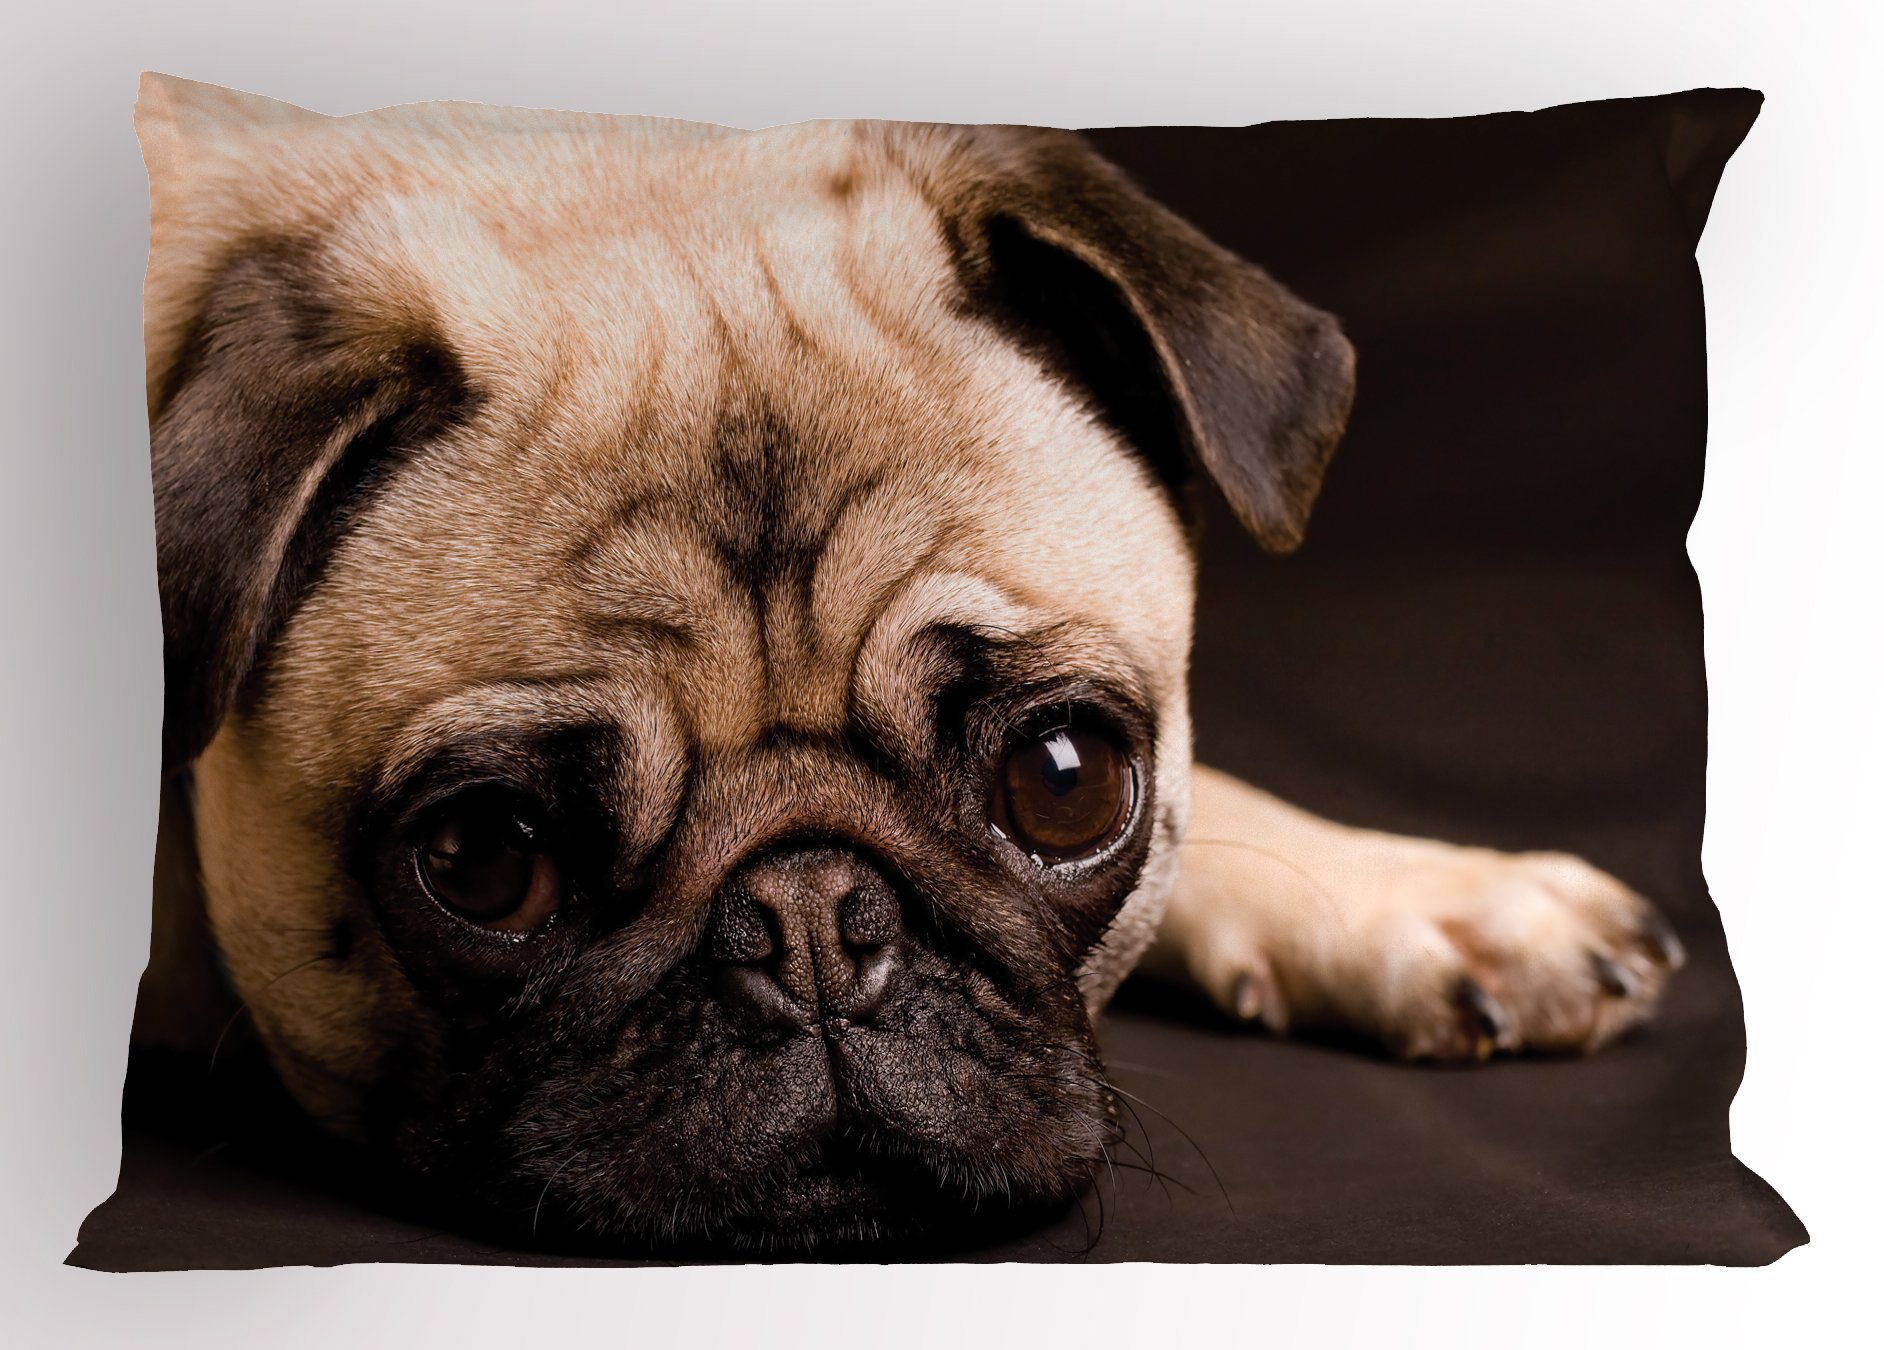 Ambesonne Pug Pillow Sham, Cute Photograph of a Pug with Its Little Paws Pure Bred Dog Image Animal Fun, Decorative Standard King Size Printed Pillowcase, 36 X 20 inches, Brown Pale Brown